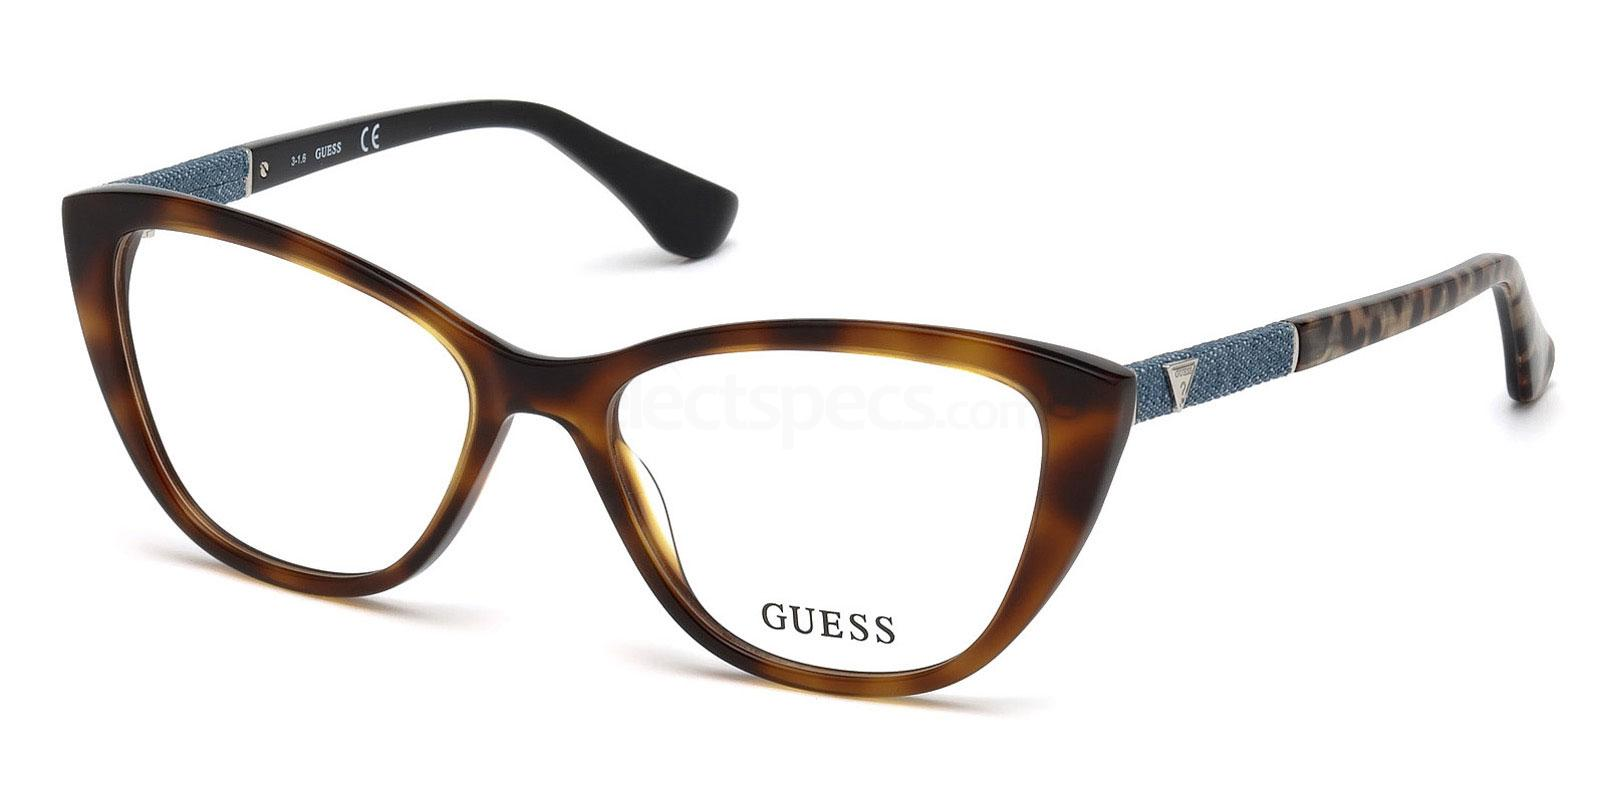 056 GU2593 Glasses, Guess